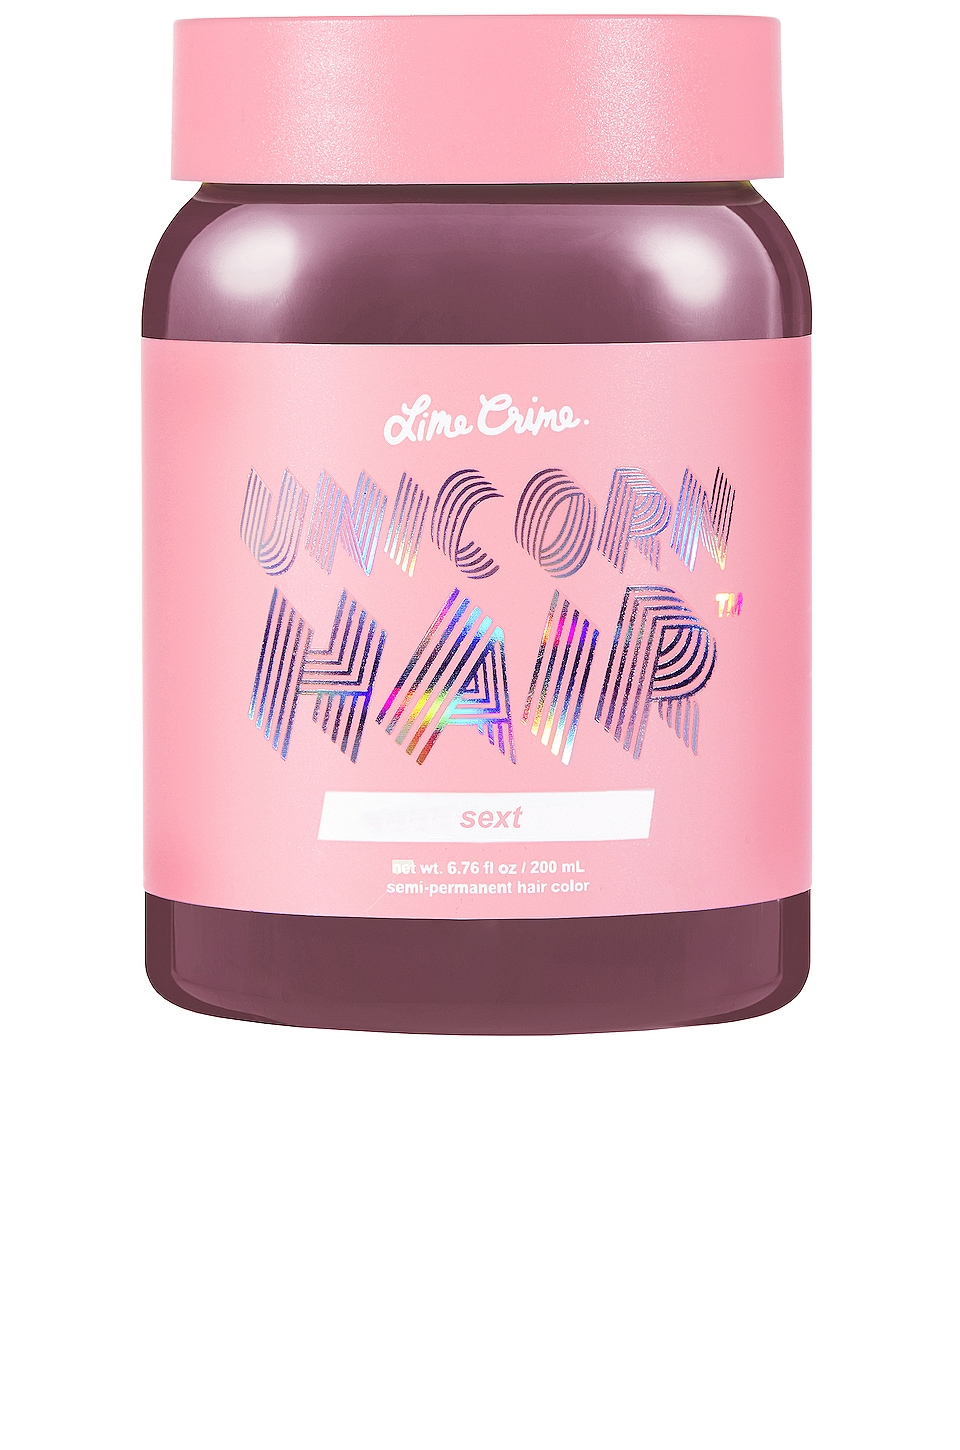 Lime Crime Unicorn Hair in Sext